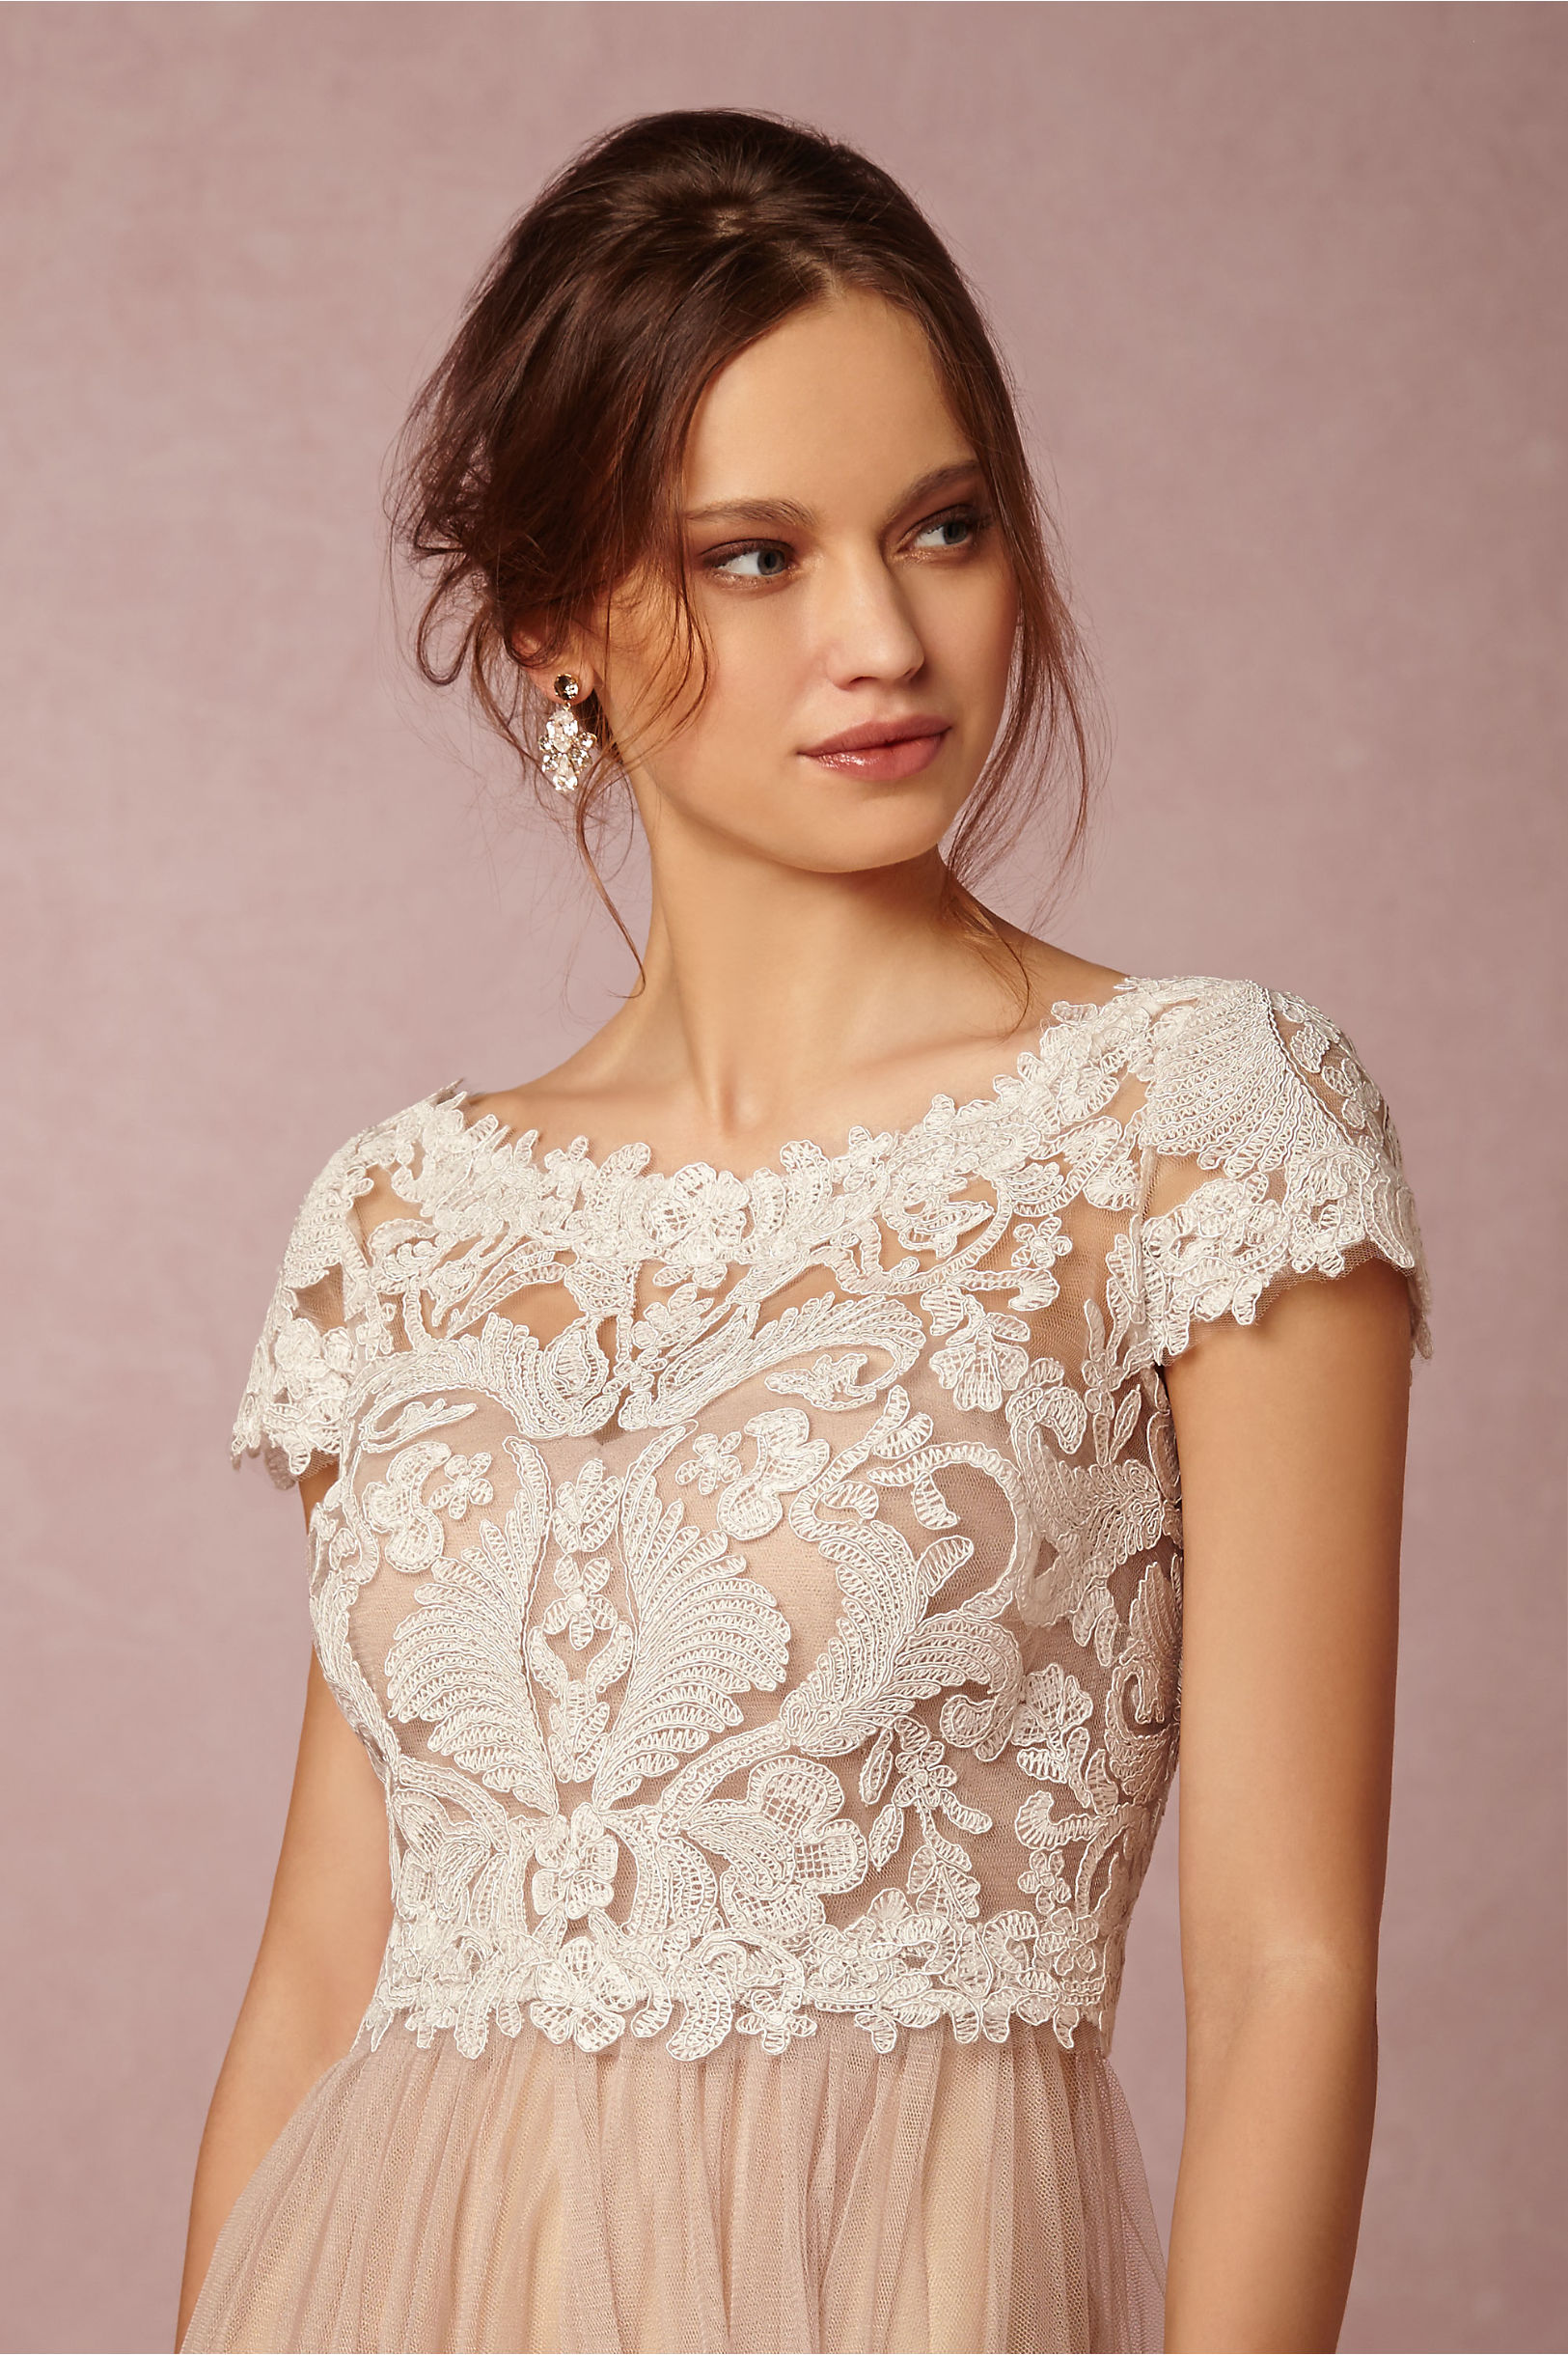 Seville Topper in Sale | BHLDN